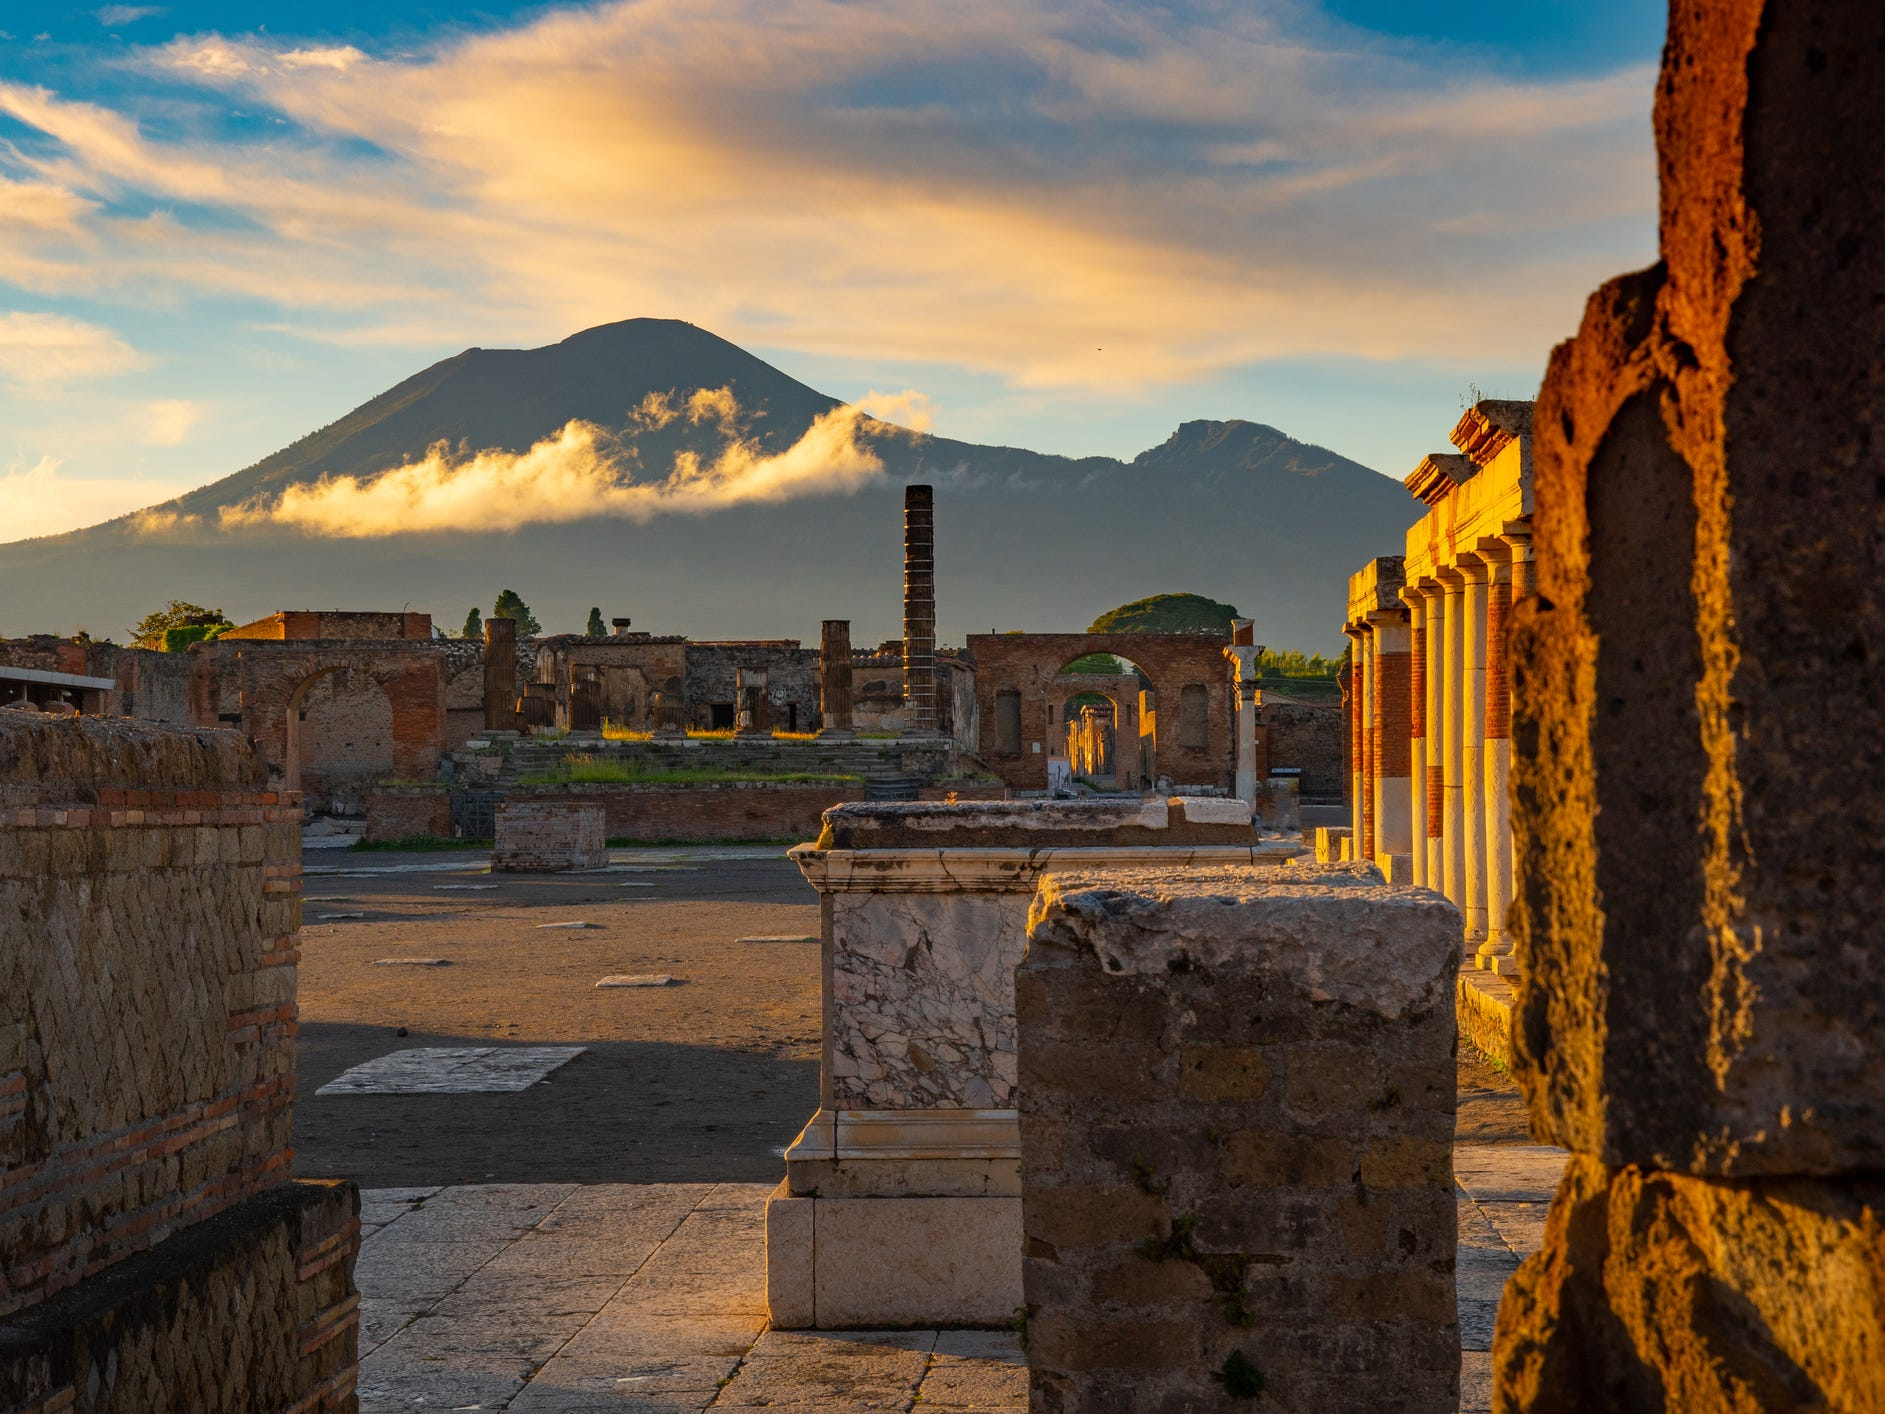 The archaeological site of Pompeii, Italy.